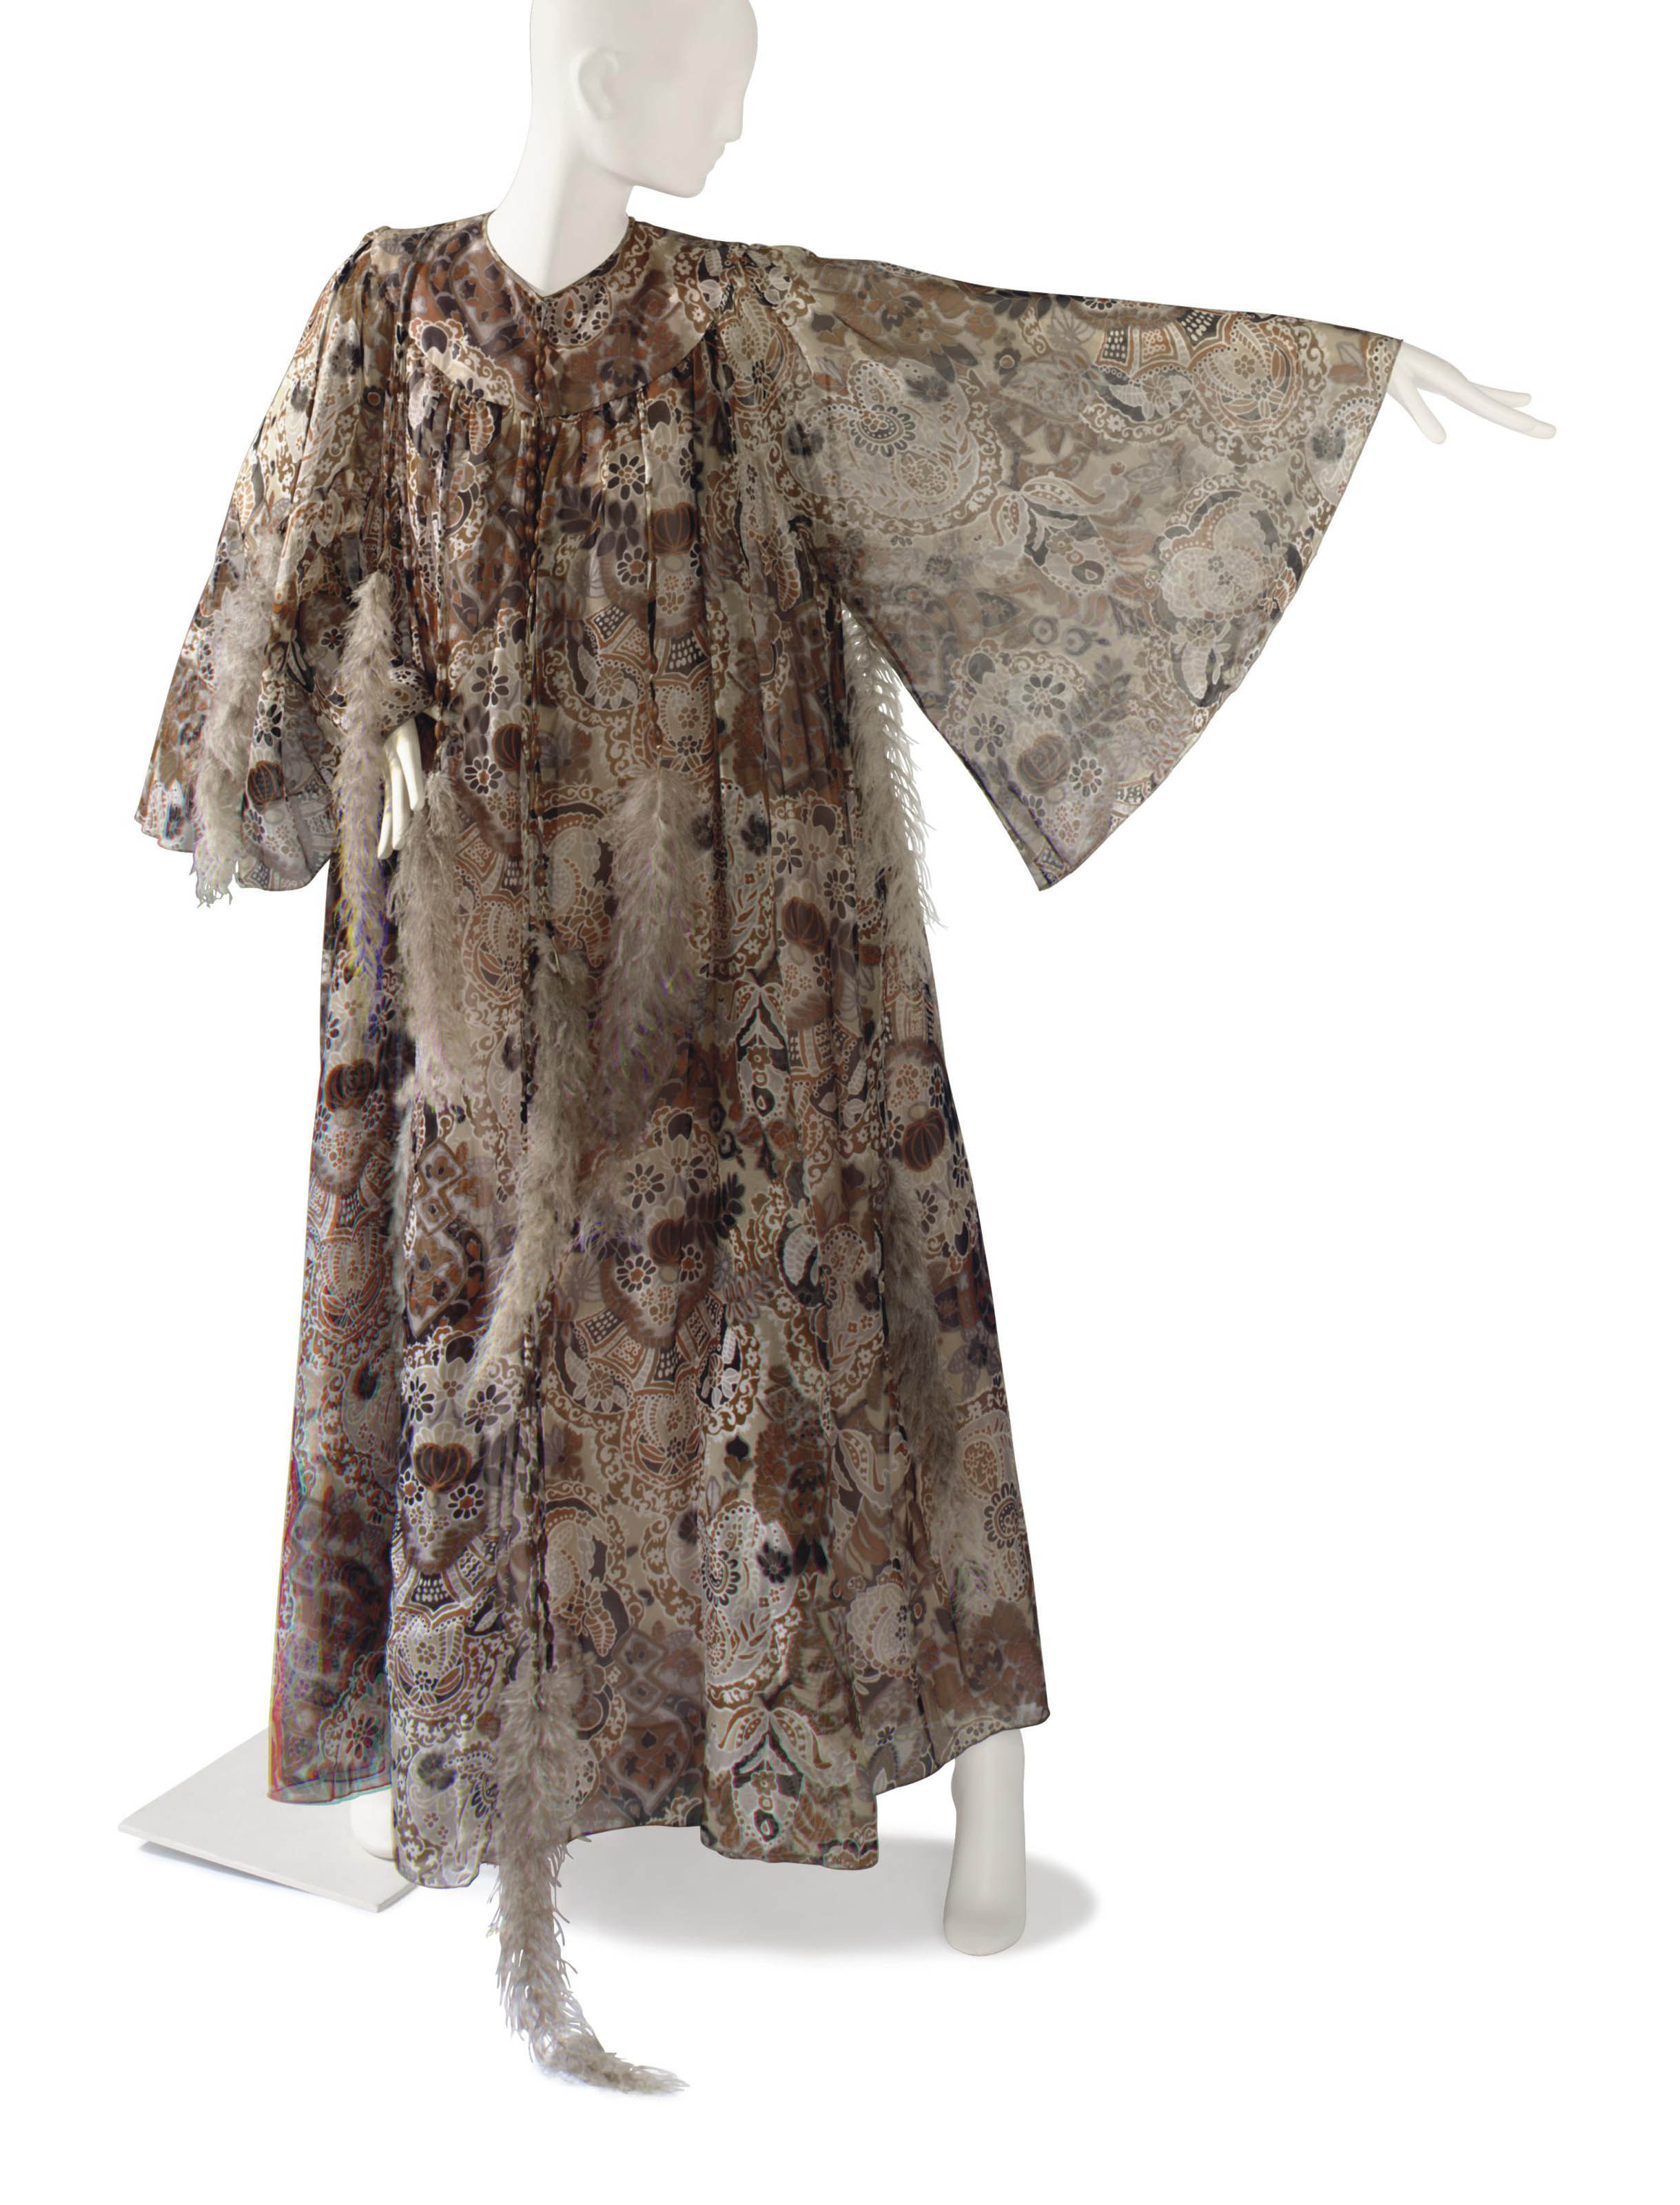 A GINA FRATINI BROWN AND GREY PRINT CHIFFON, BEAD AND FEATHER ADORNED CAFTAN